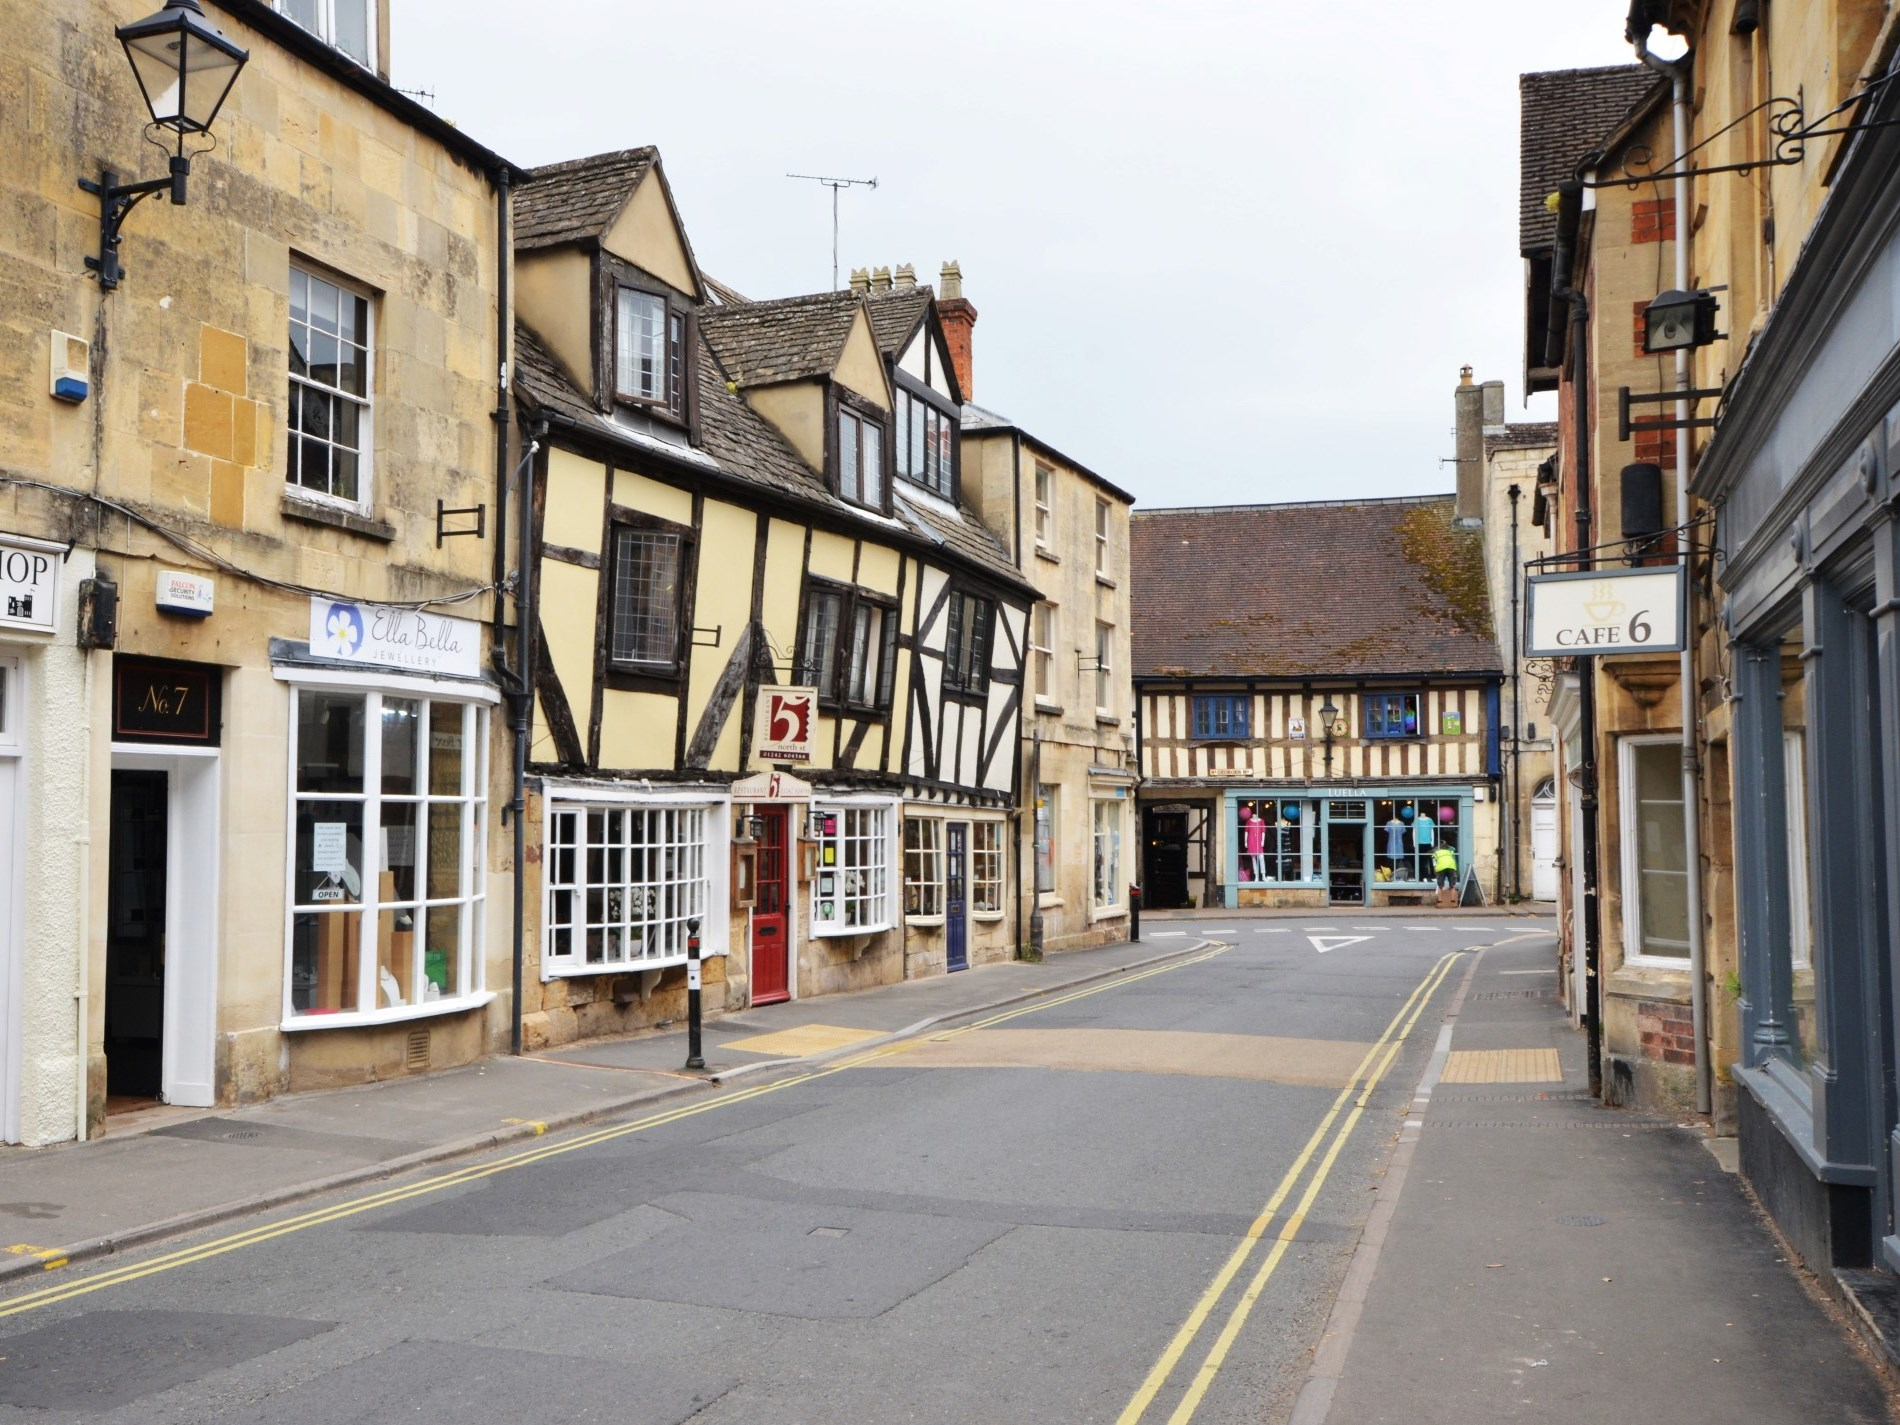 Local shops and high street